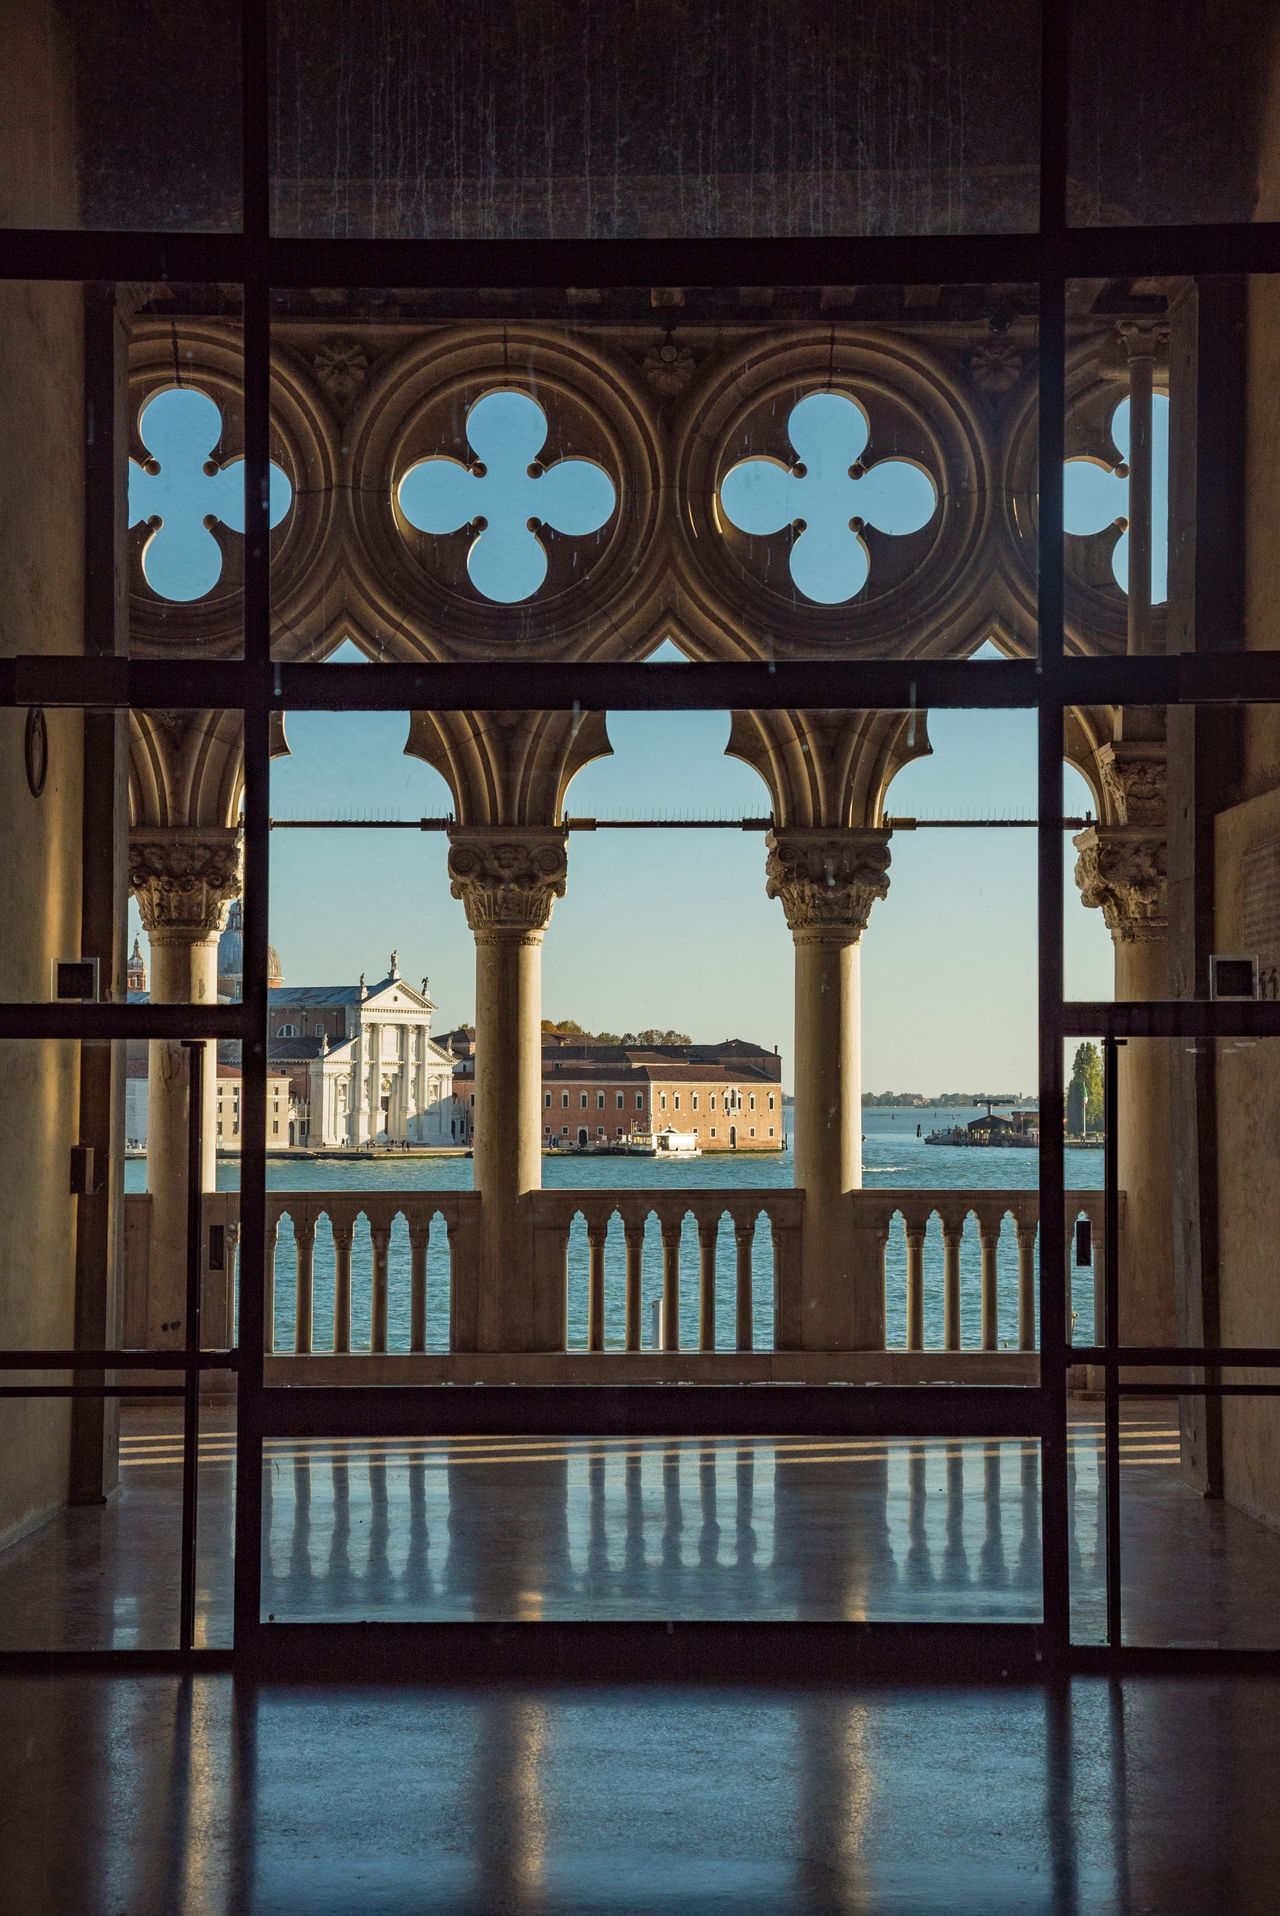 Architectural Column Architecture Building Exterior Built Structure City Day Doge's Palace Marble No People Outdoors Patriotism Place Of Worship Politics Quatrefoil Reflection Travel Travel Destinations Venice Vista Water Window